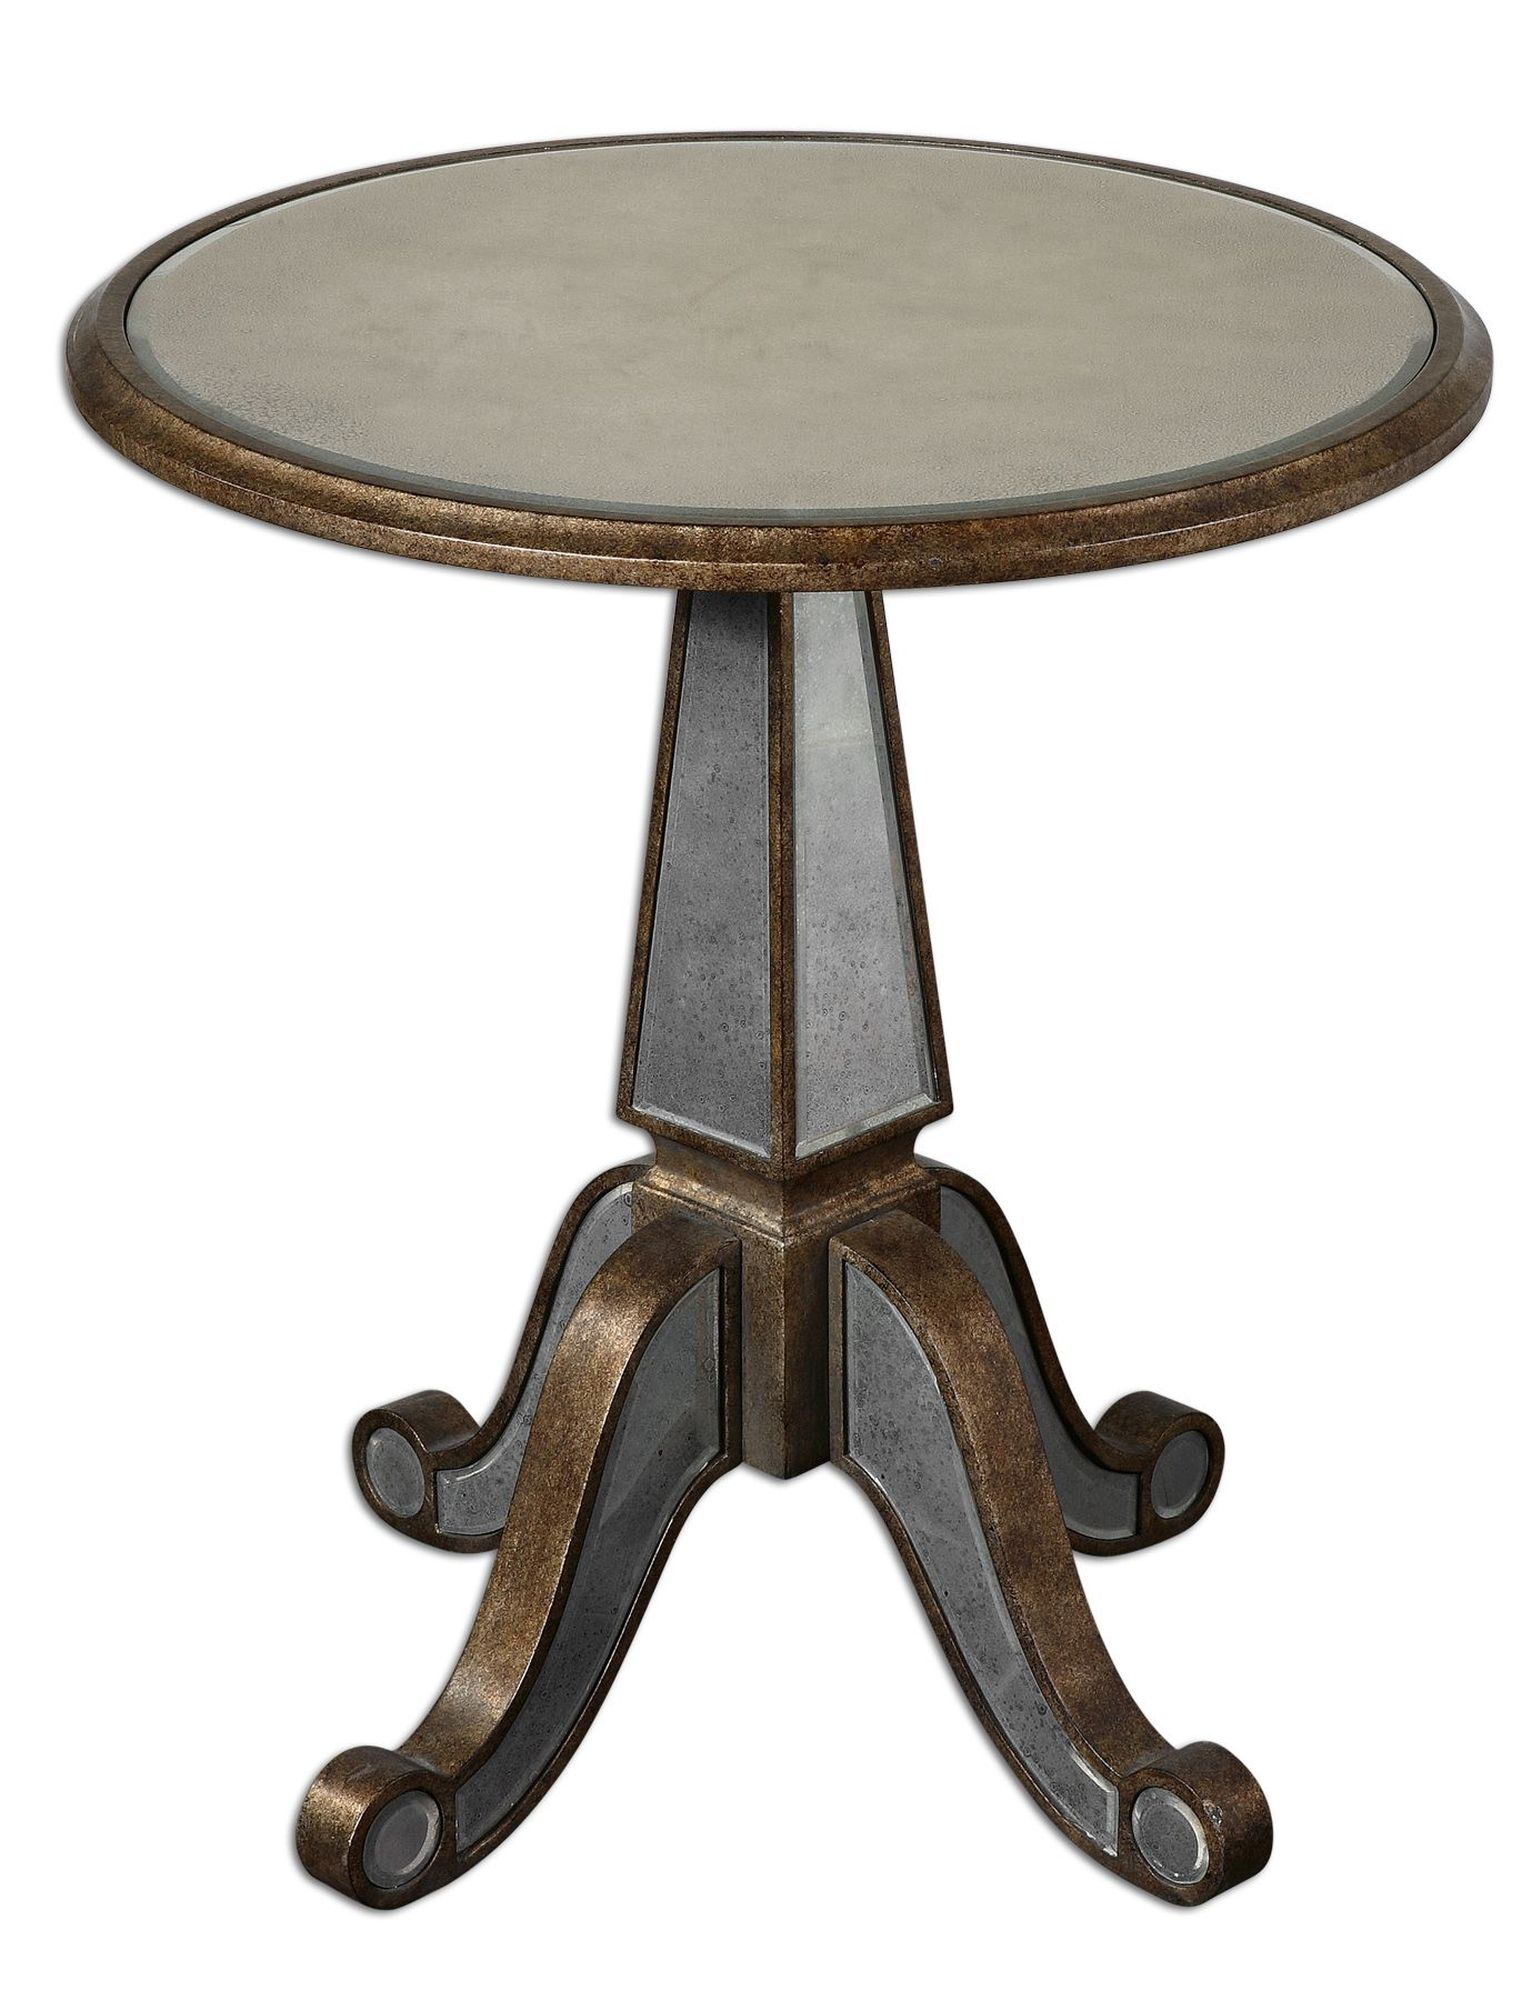 mirrored accent table rustic gold mathis brothers furniture pedestal cream round side target threshold windham cabinet sofa barnwood unfinished bookcases battery floor lamp